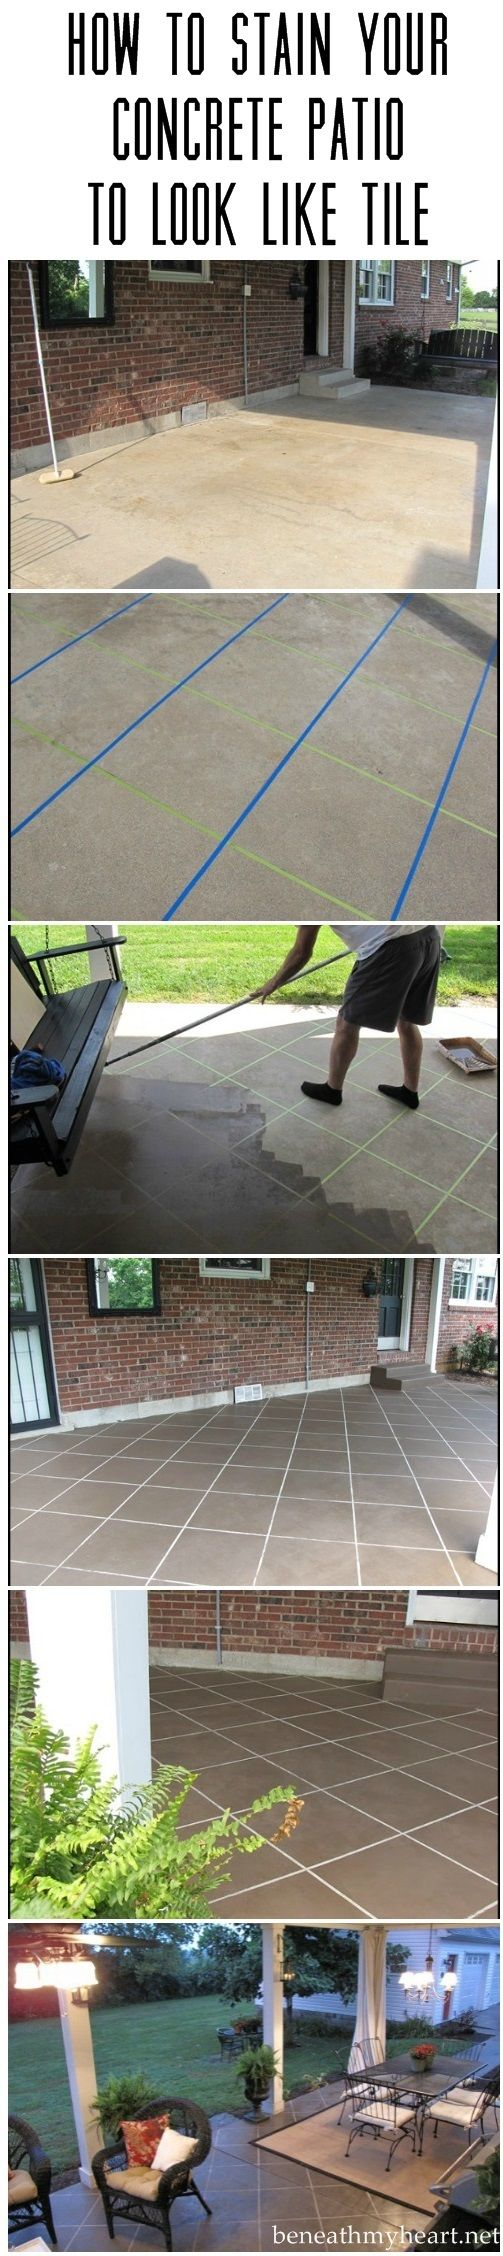 *How to stain your concrete patio to look like tile.